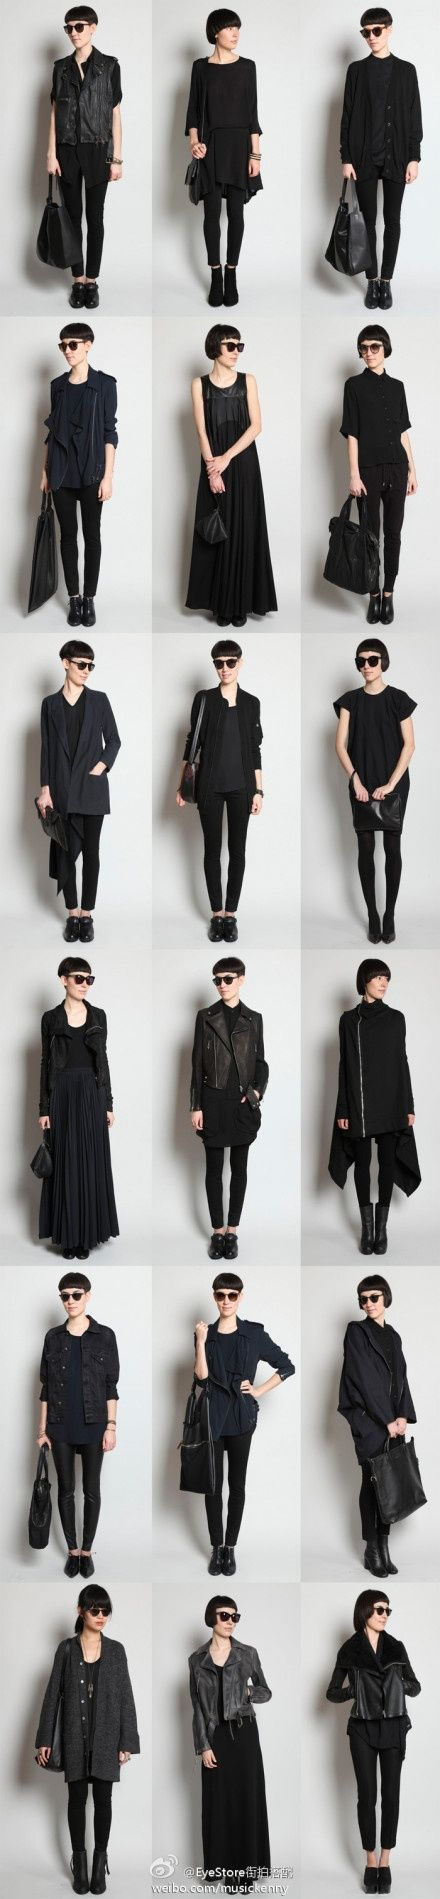 black on black on black - makes for a perfect capsule wardrobe